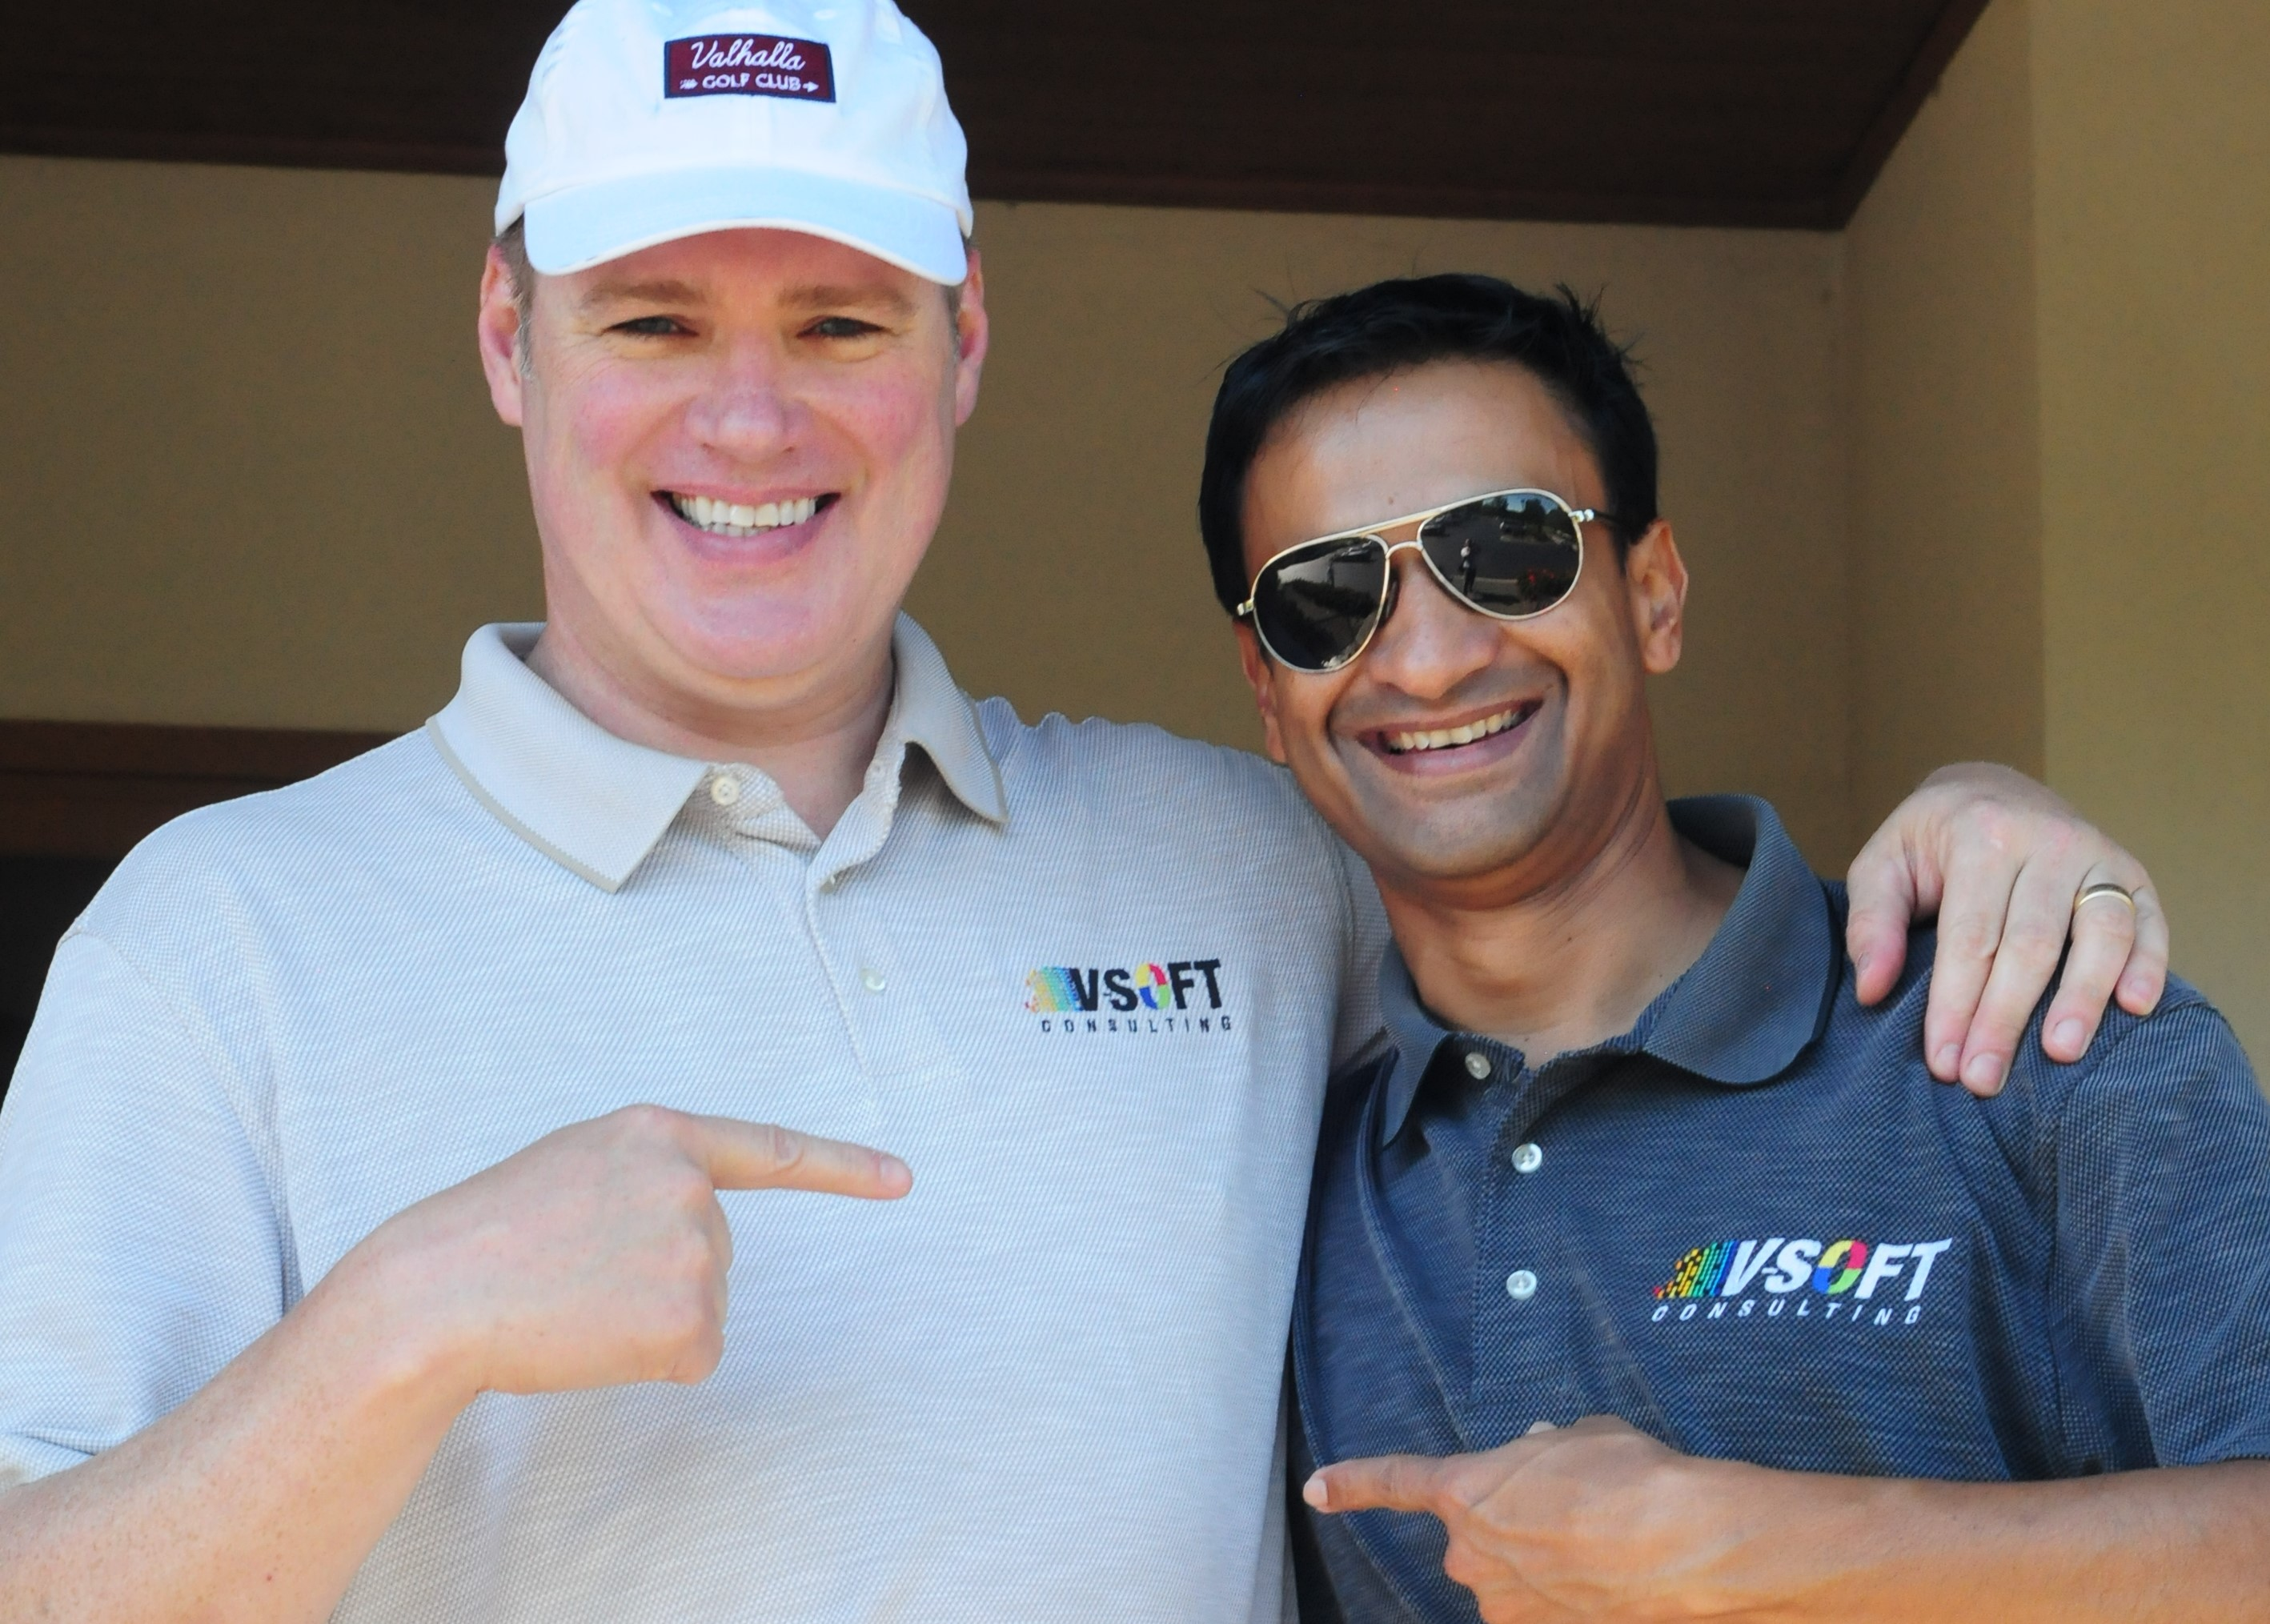 Michael Ross, Director of Marketing at V-Soft Consulting with Jai Bokey